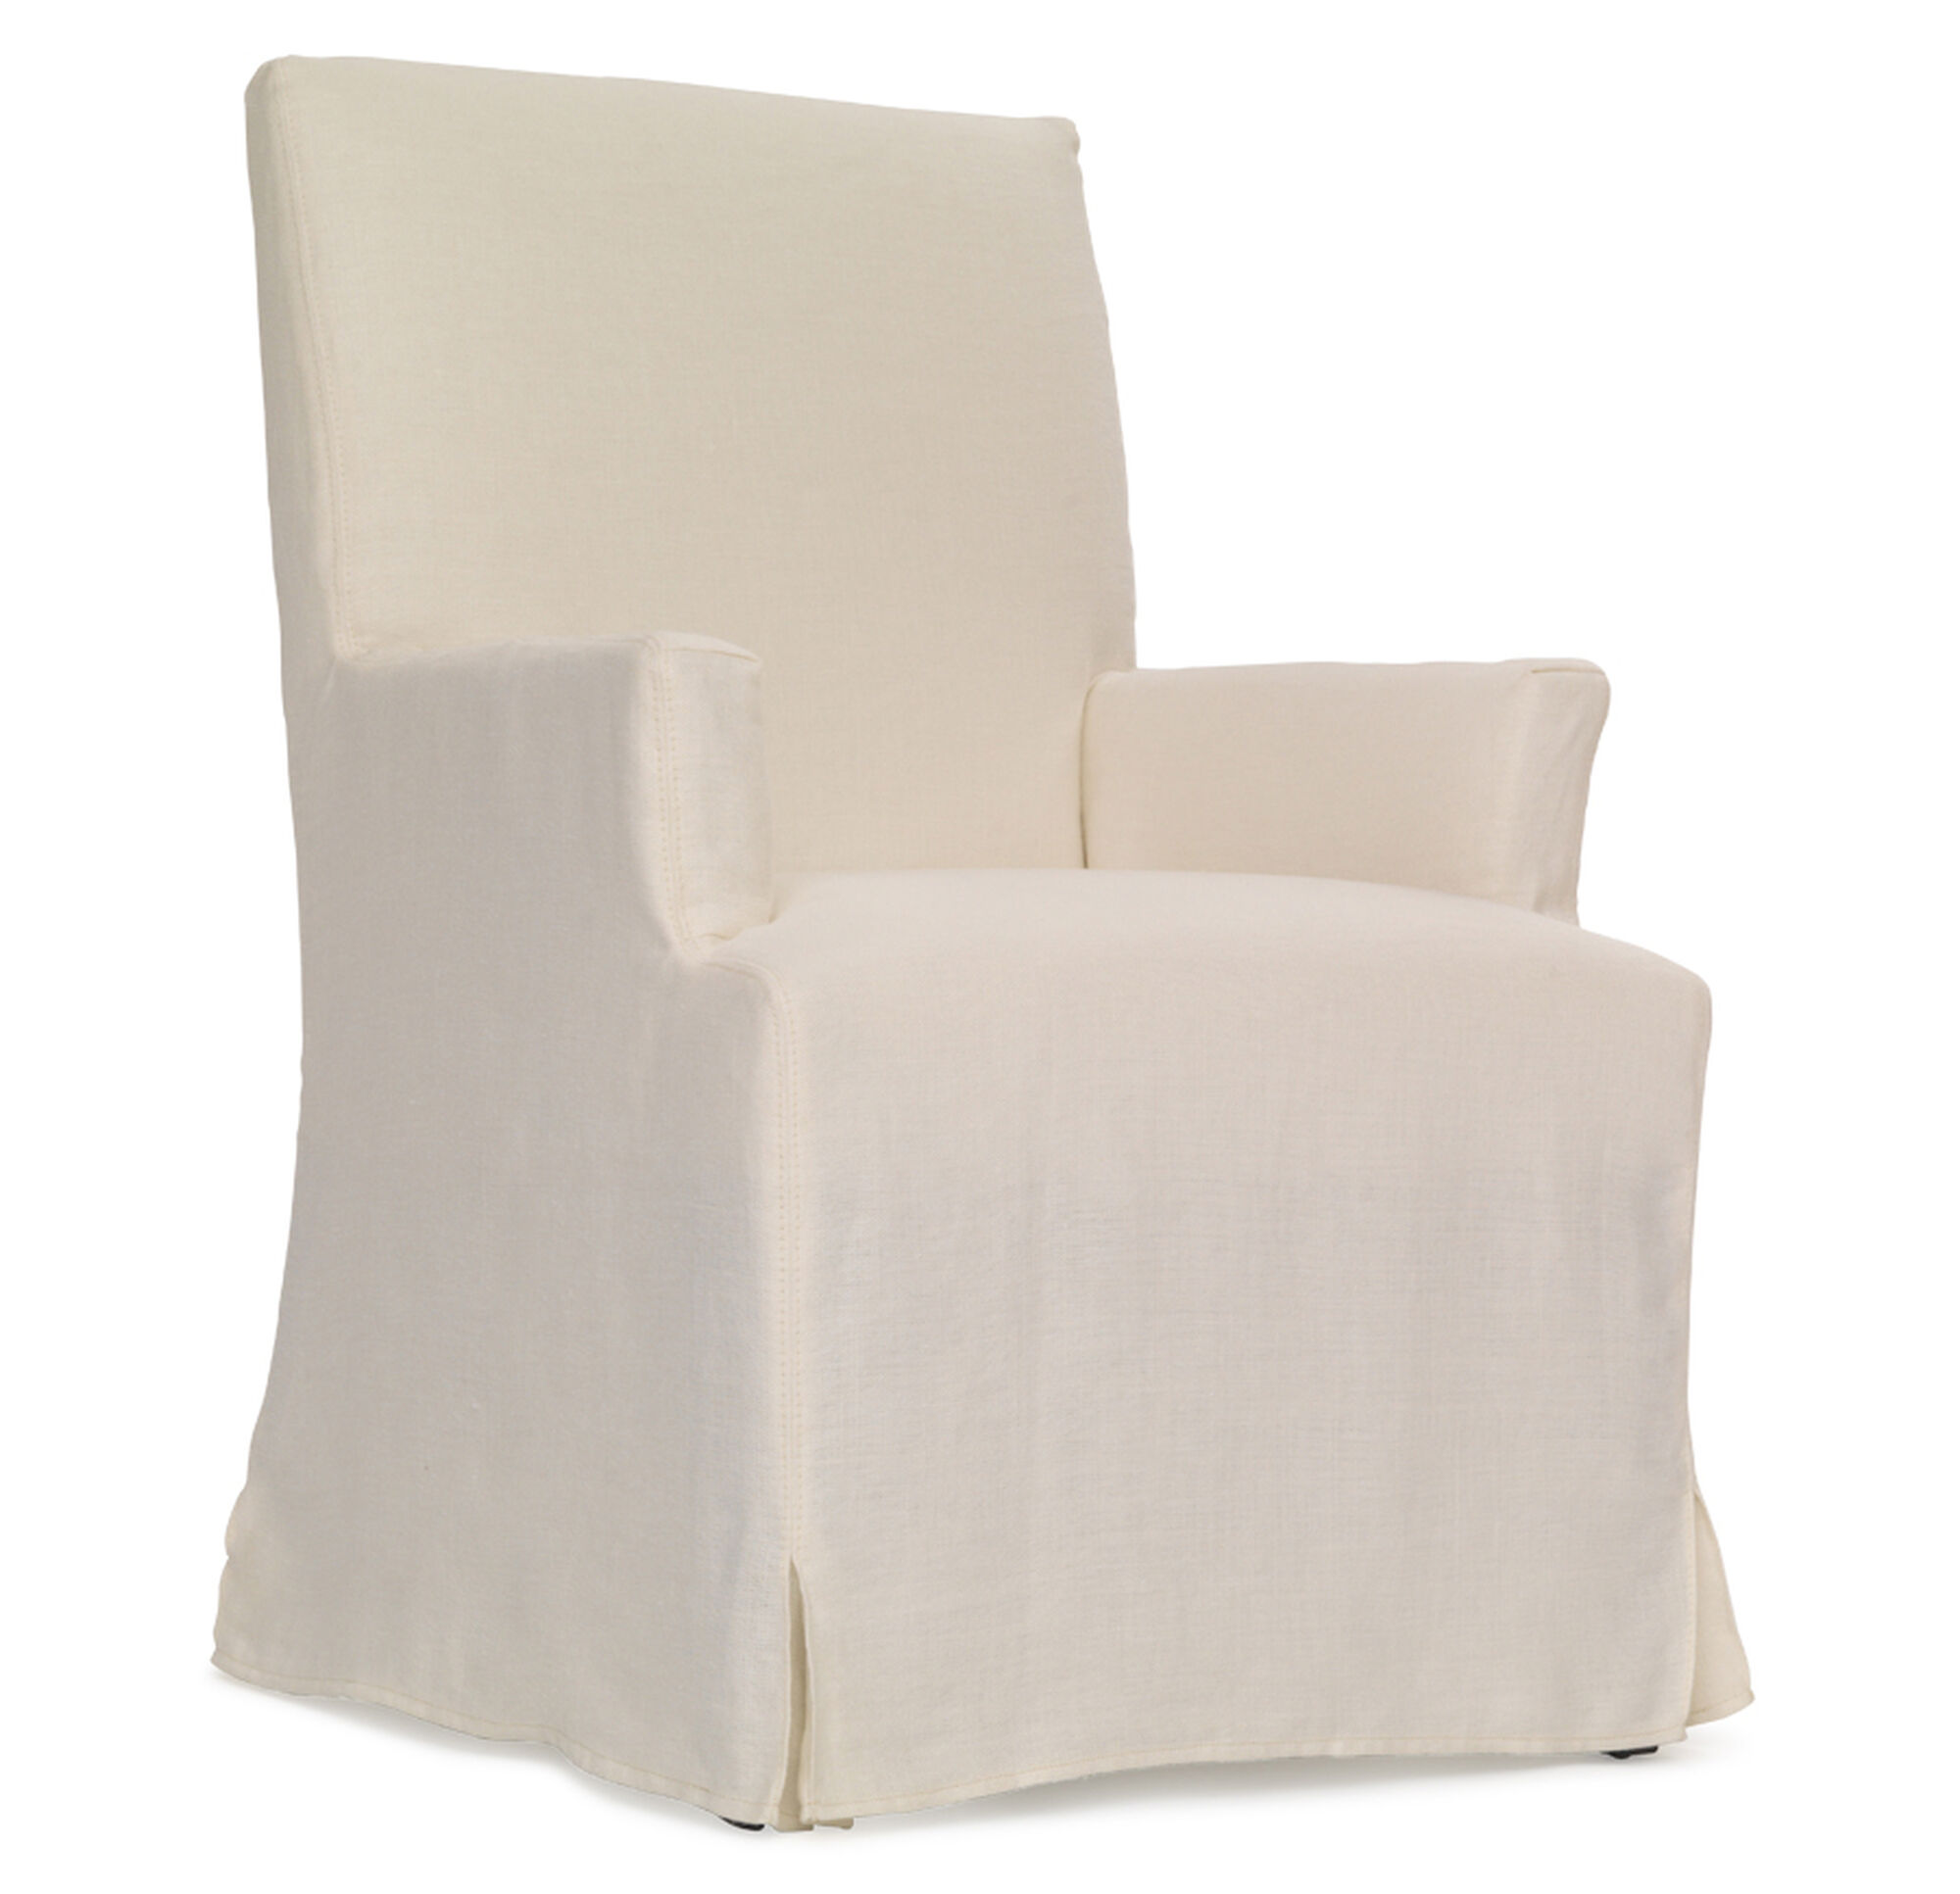 dining chair covers with arms. Dining Chair Covers With Arms L